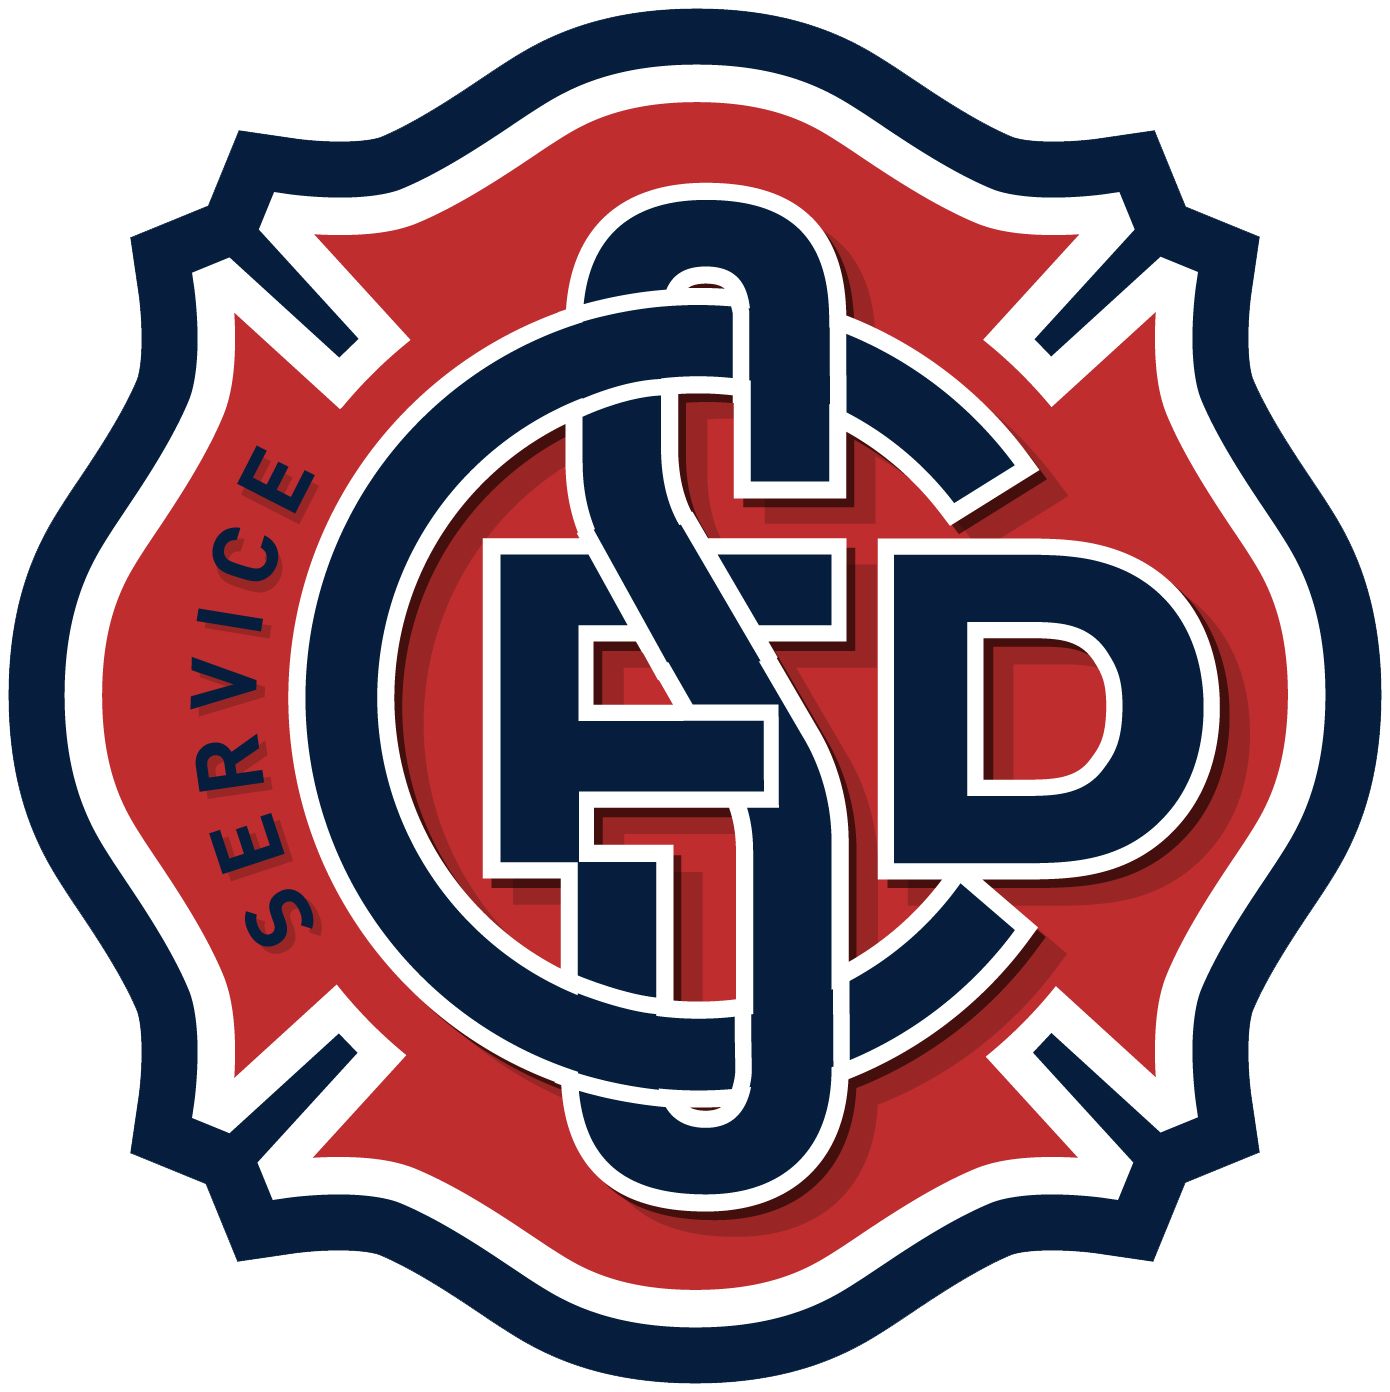 firefighter logo clipart clipart suggest firefighter logo maker firefighter logo clipart